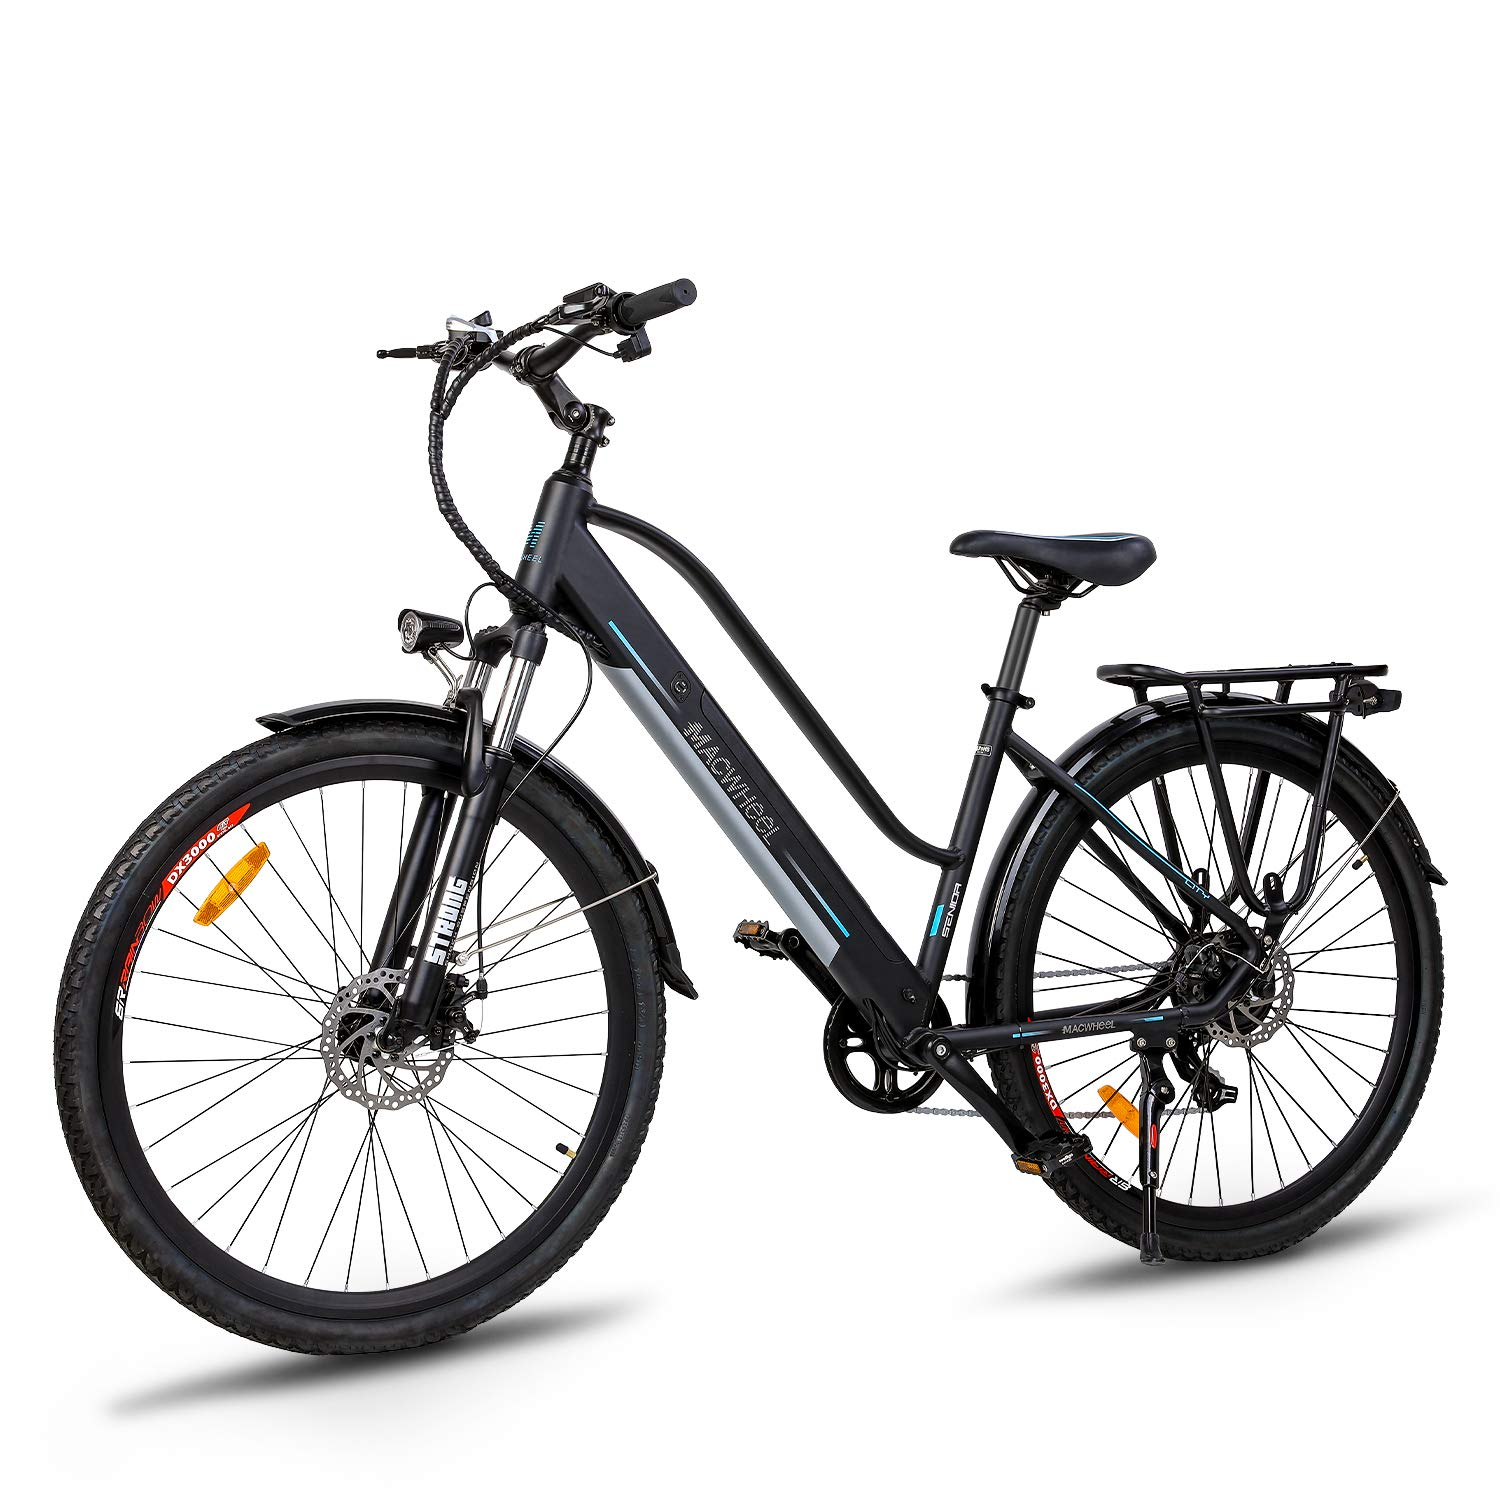 Macwheel Fastest Electric Mountain Bike